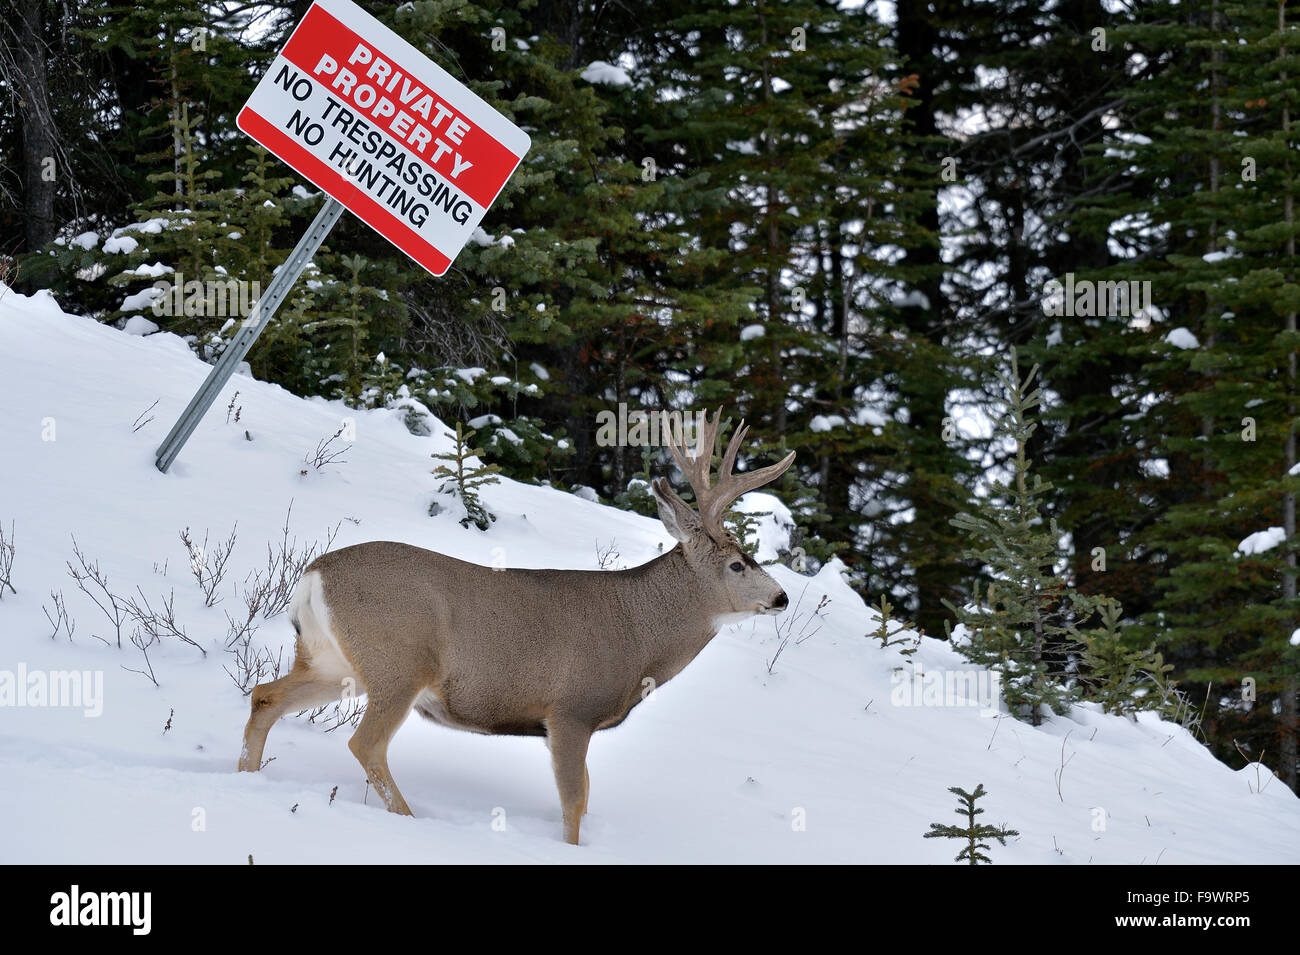 An adult mule deer buck under a no hunting sign in rural Alberta Canada Stock Photo